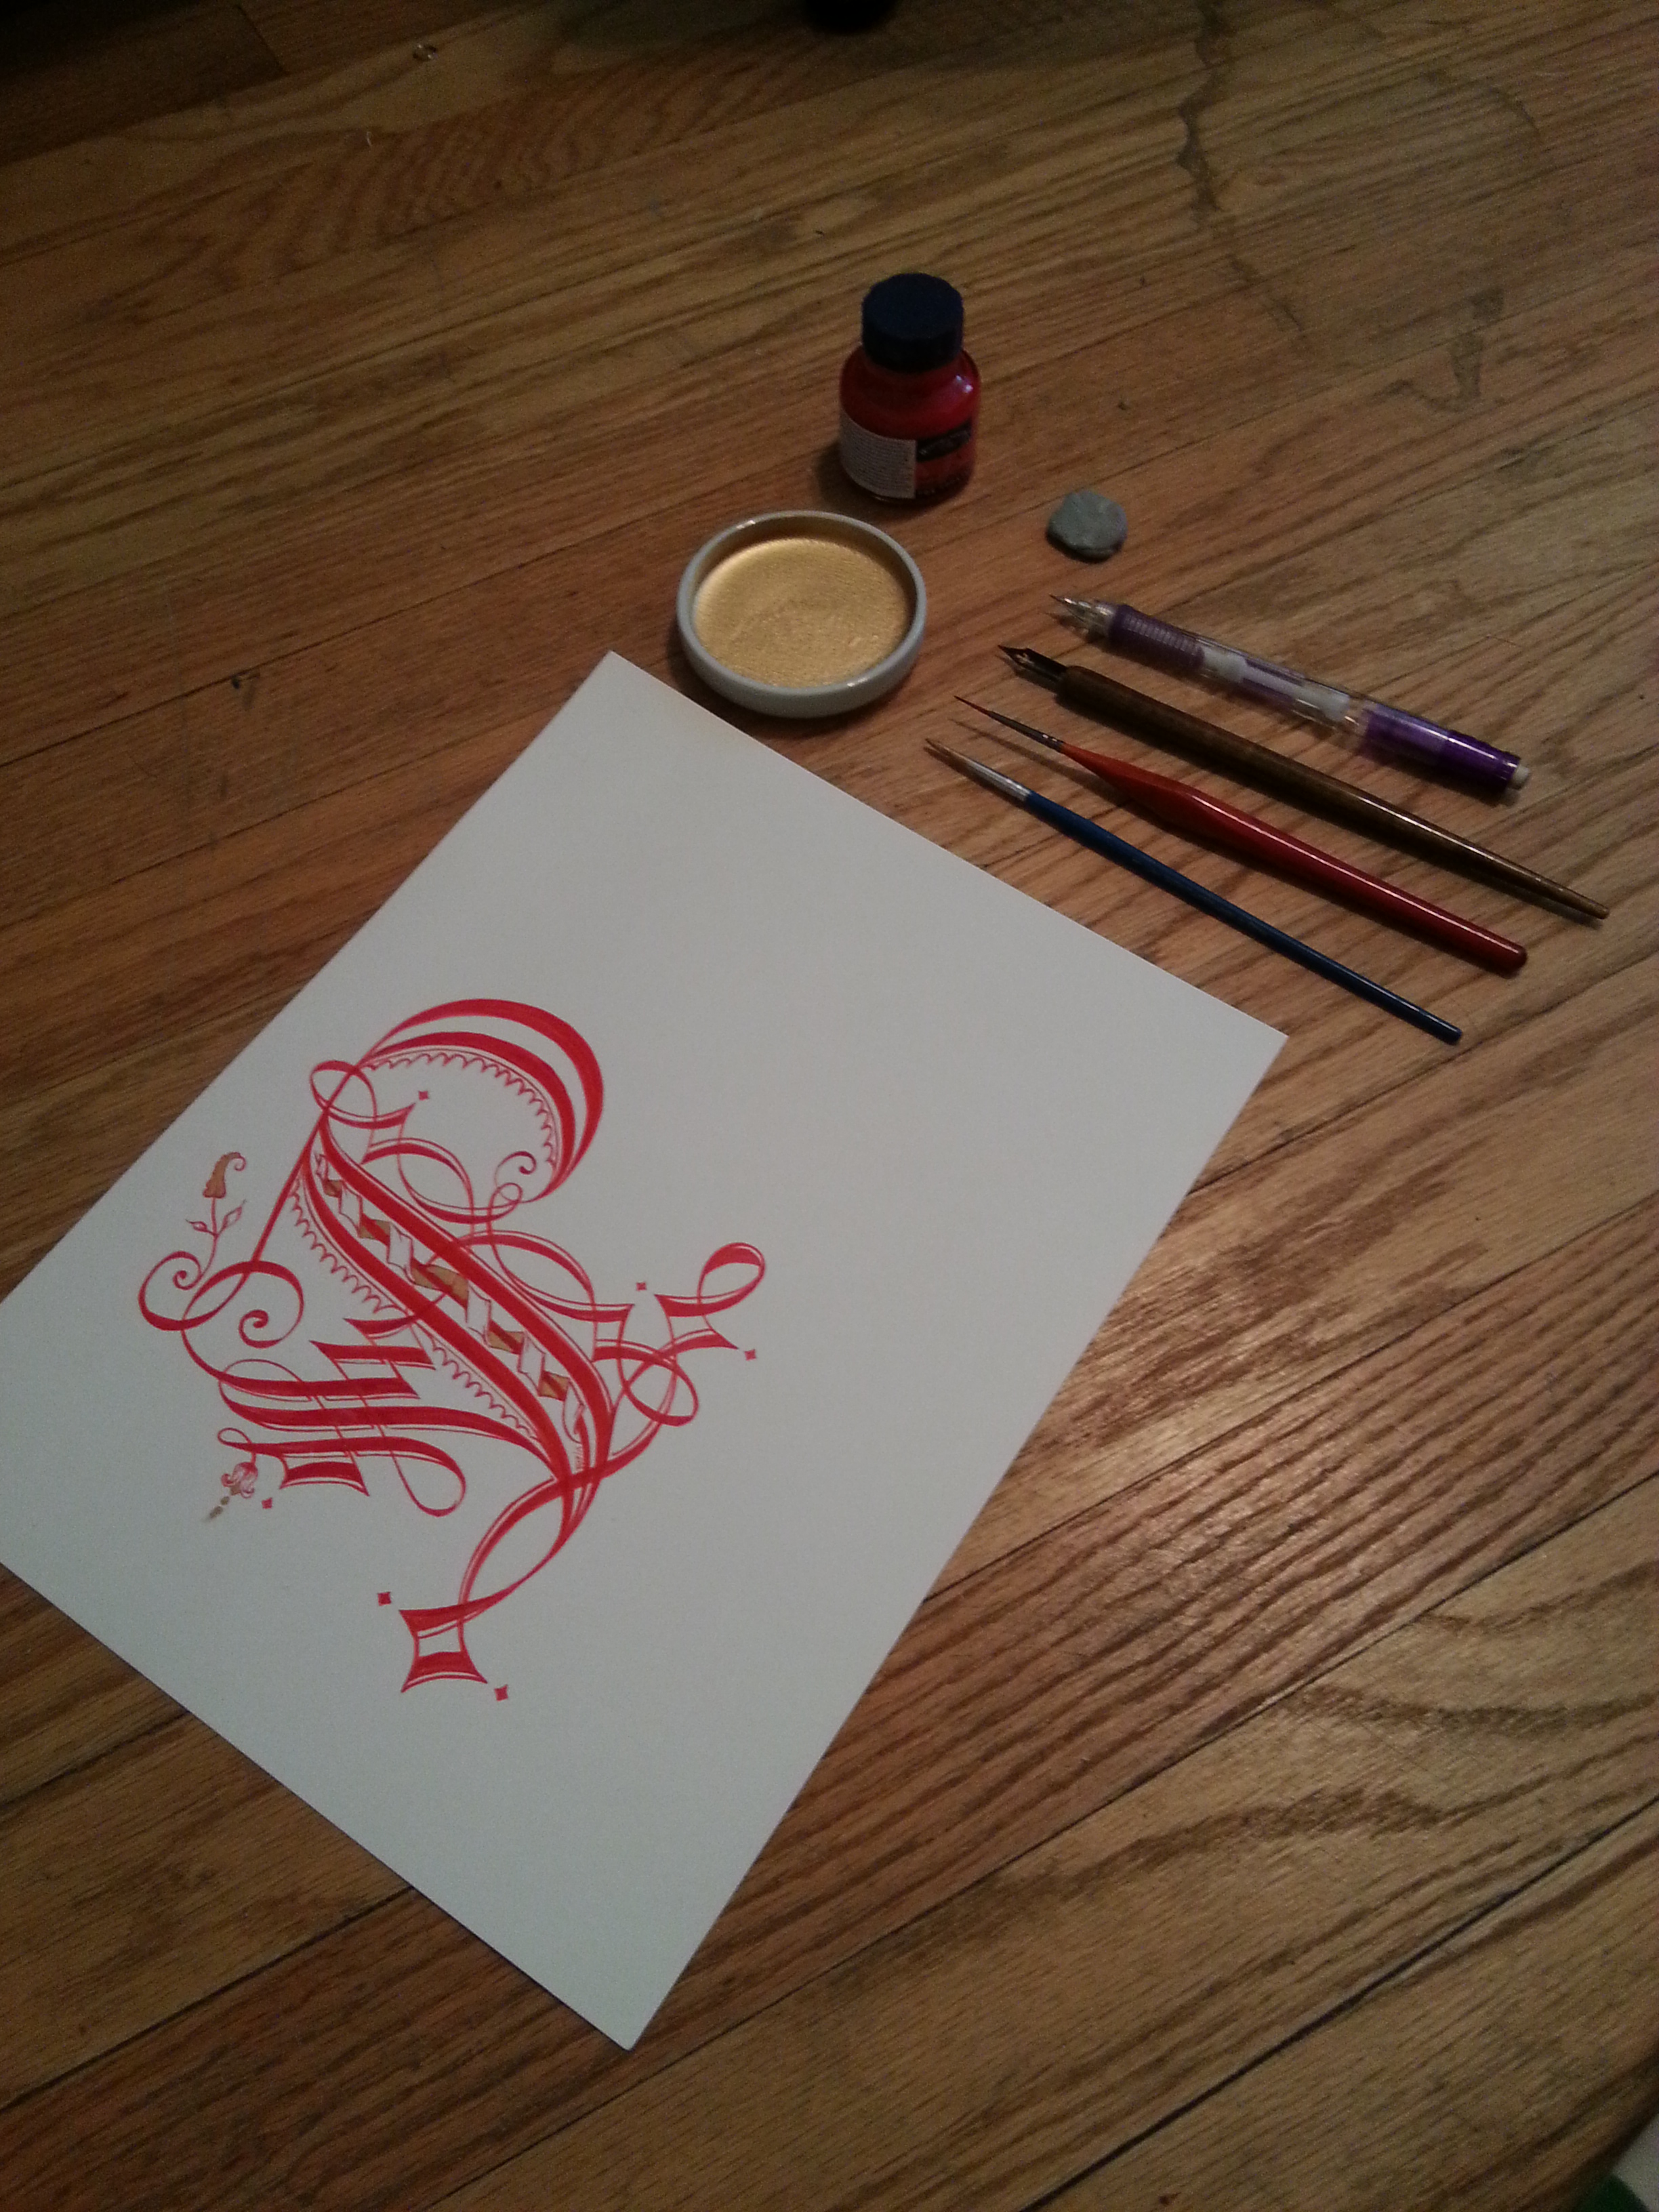 Calligraphy Cadel In Step By Step Photos – Lady Heather Hall